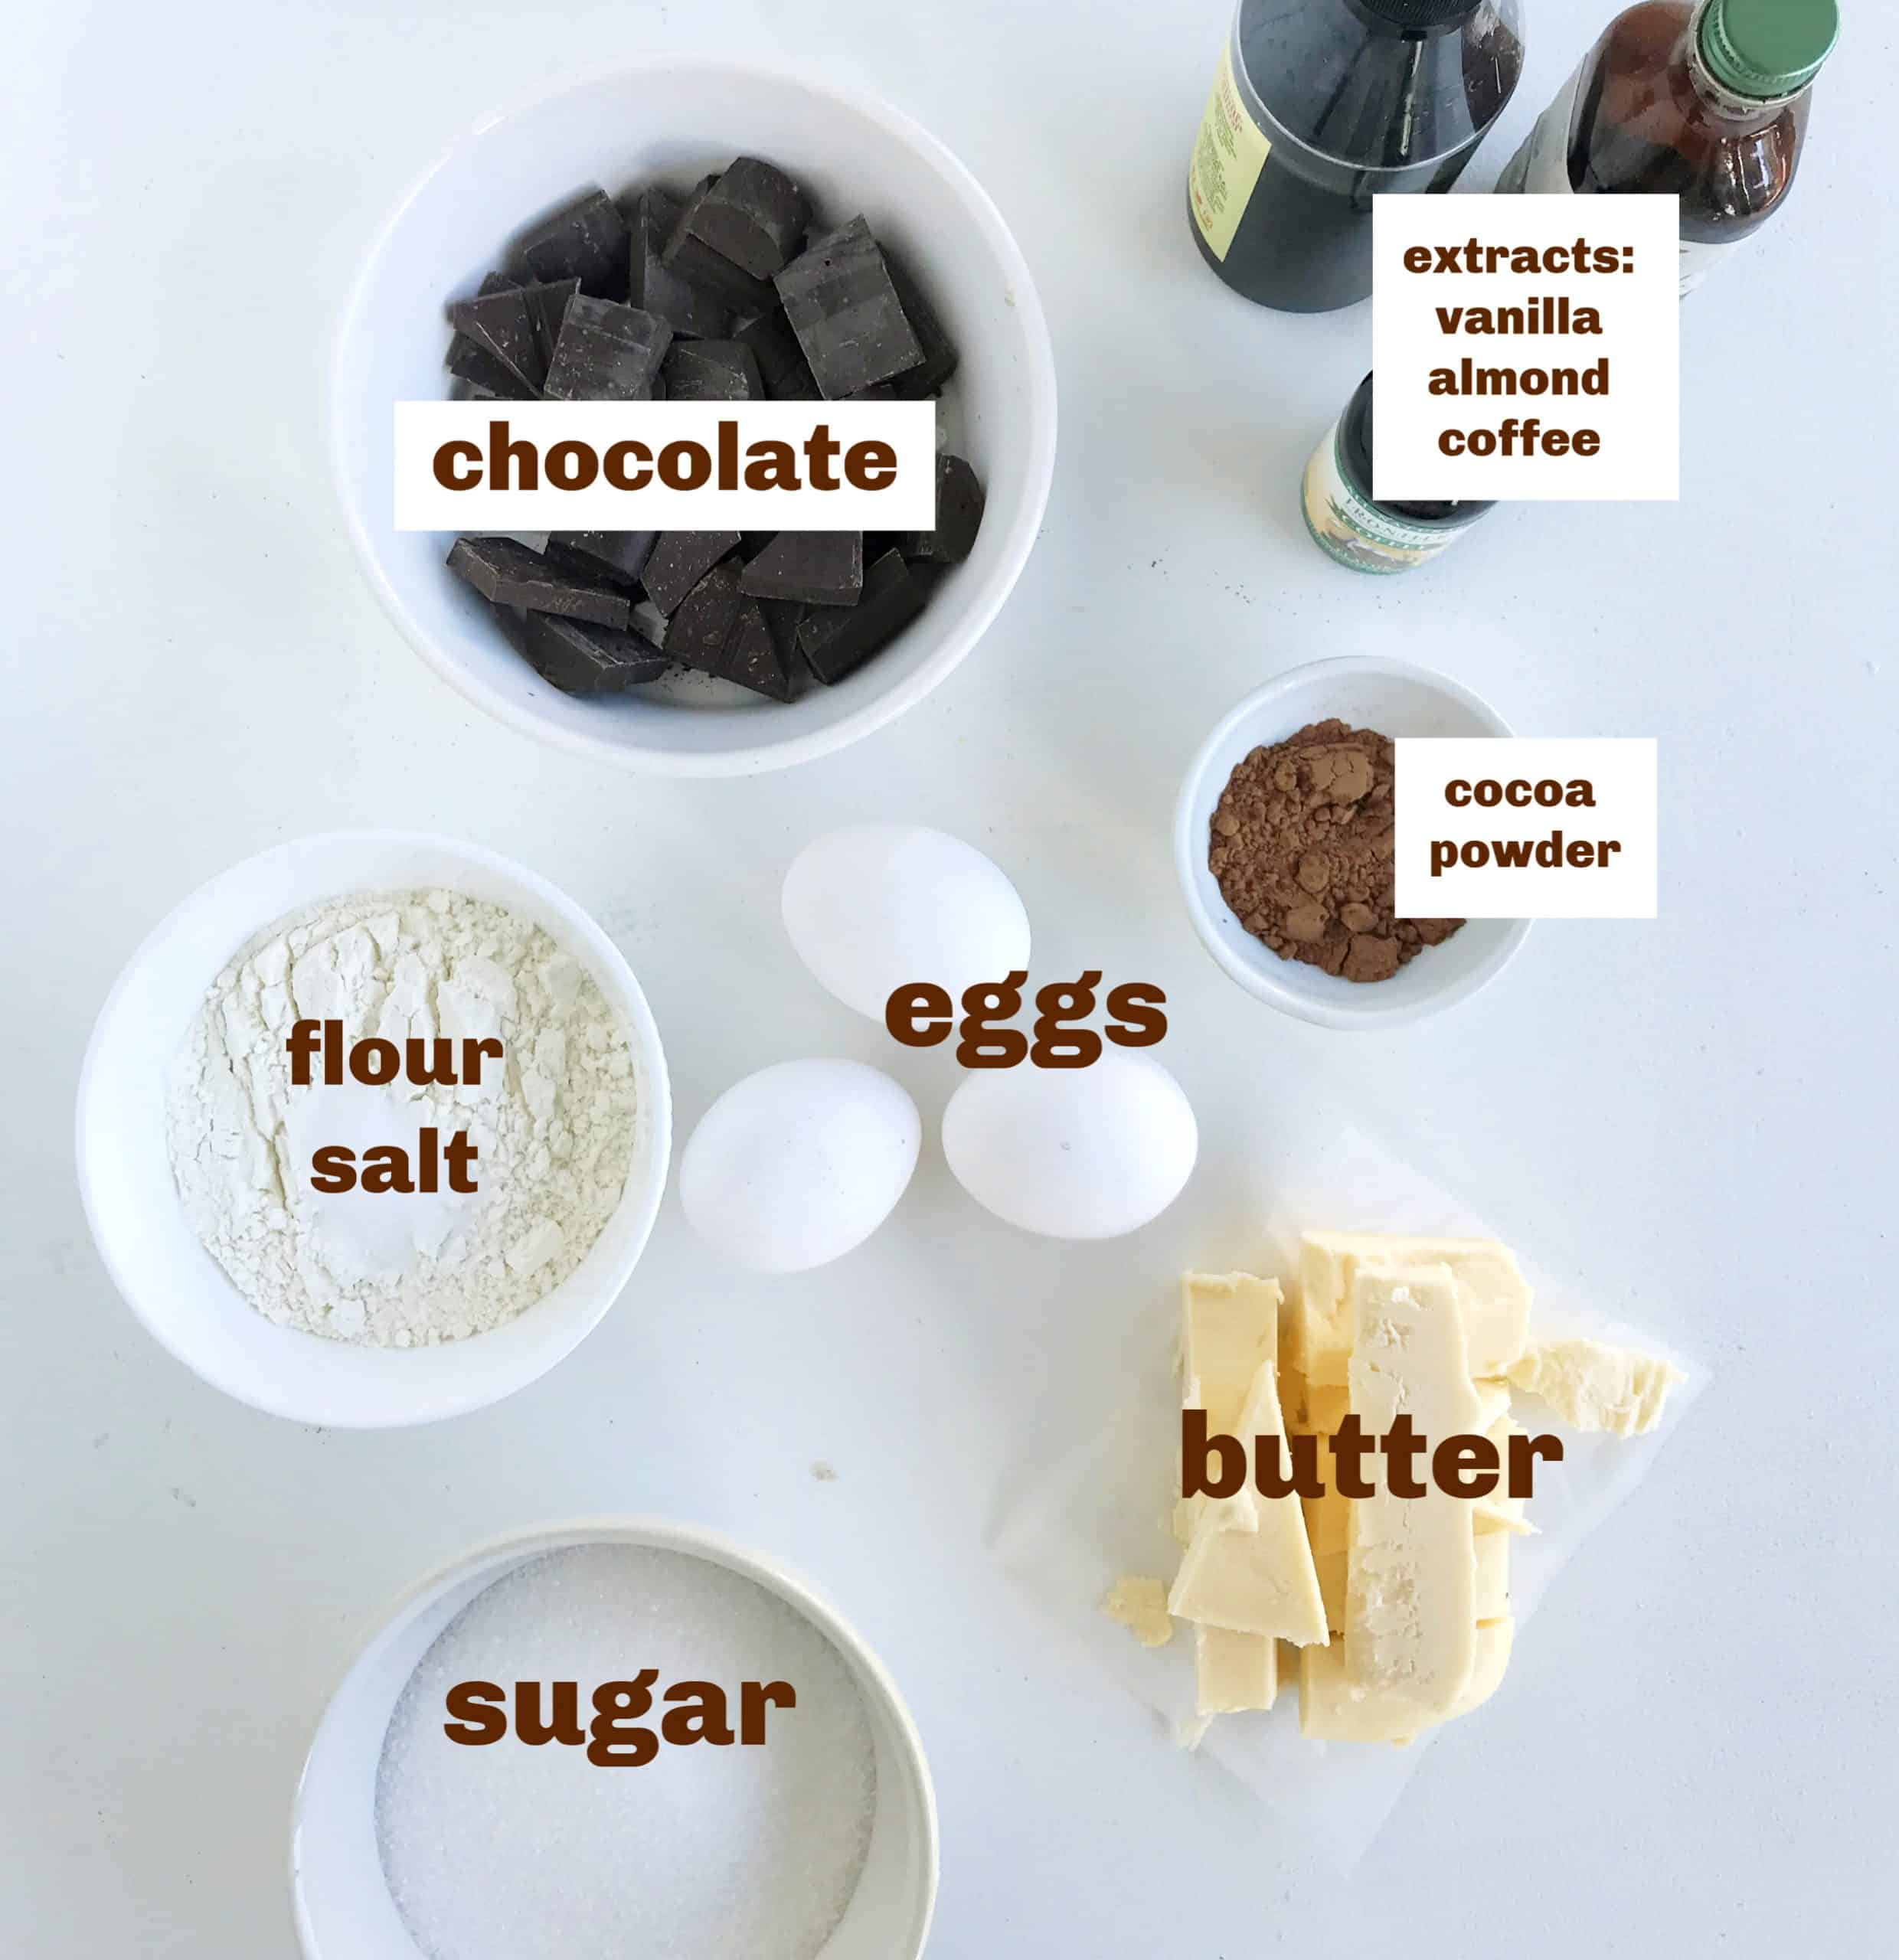 bowls with brownie ingredients, eggs, extract bottles, image with text